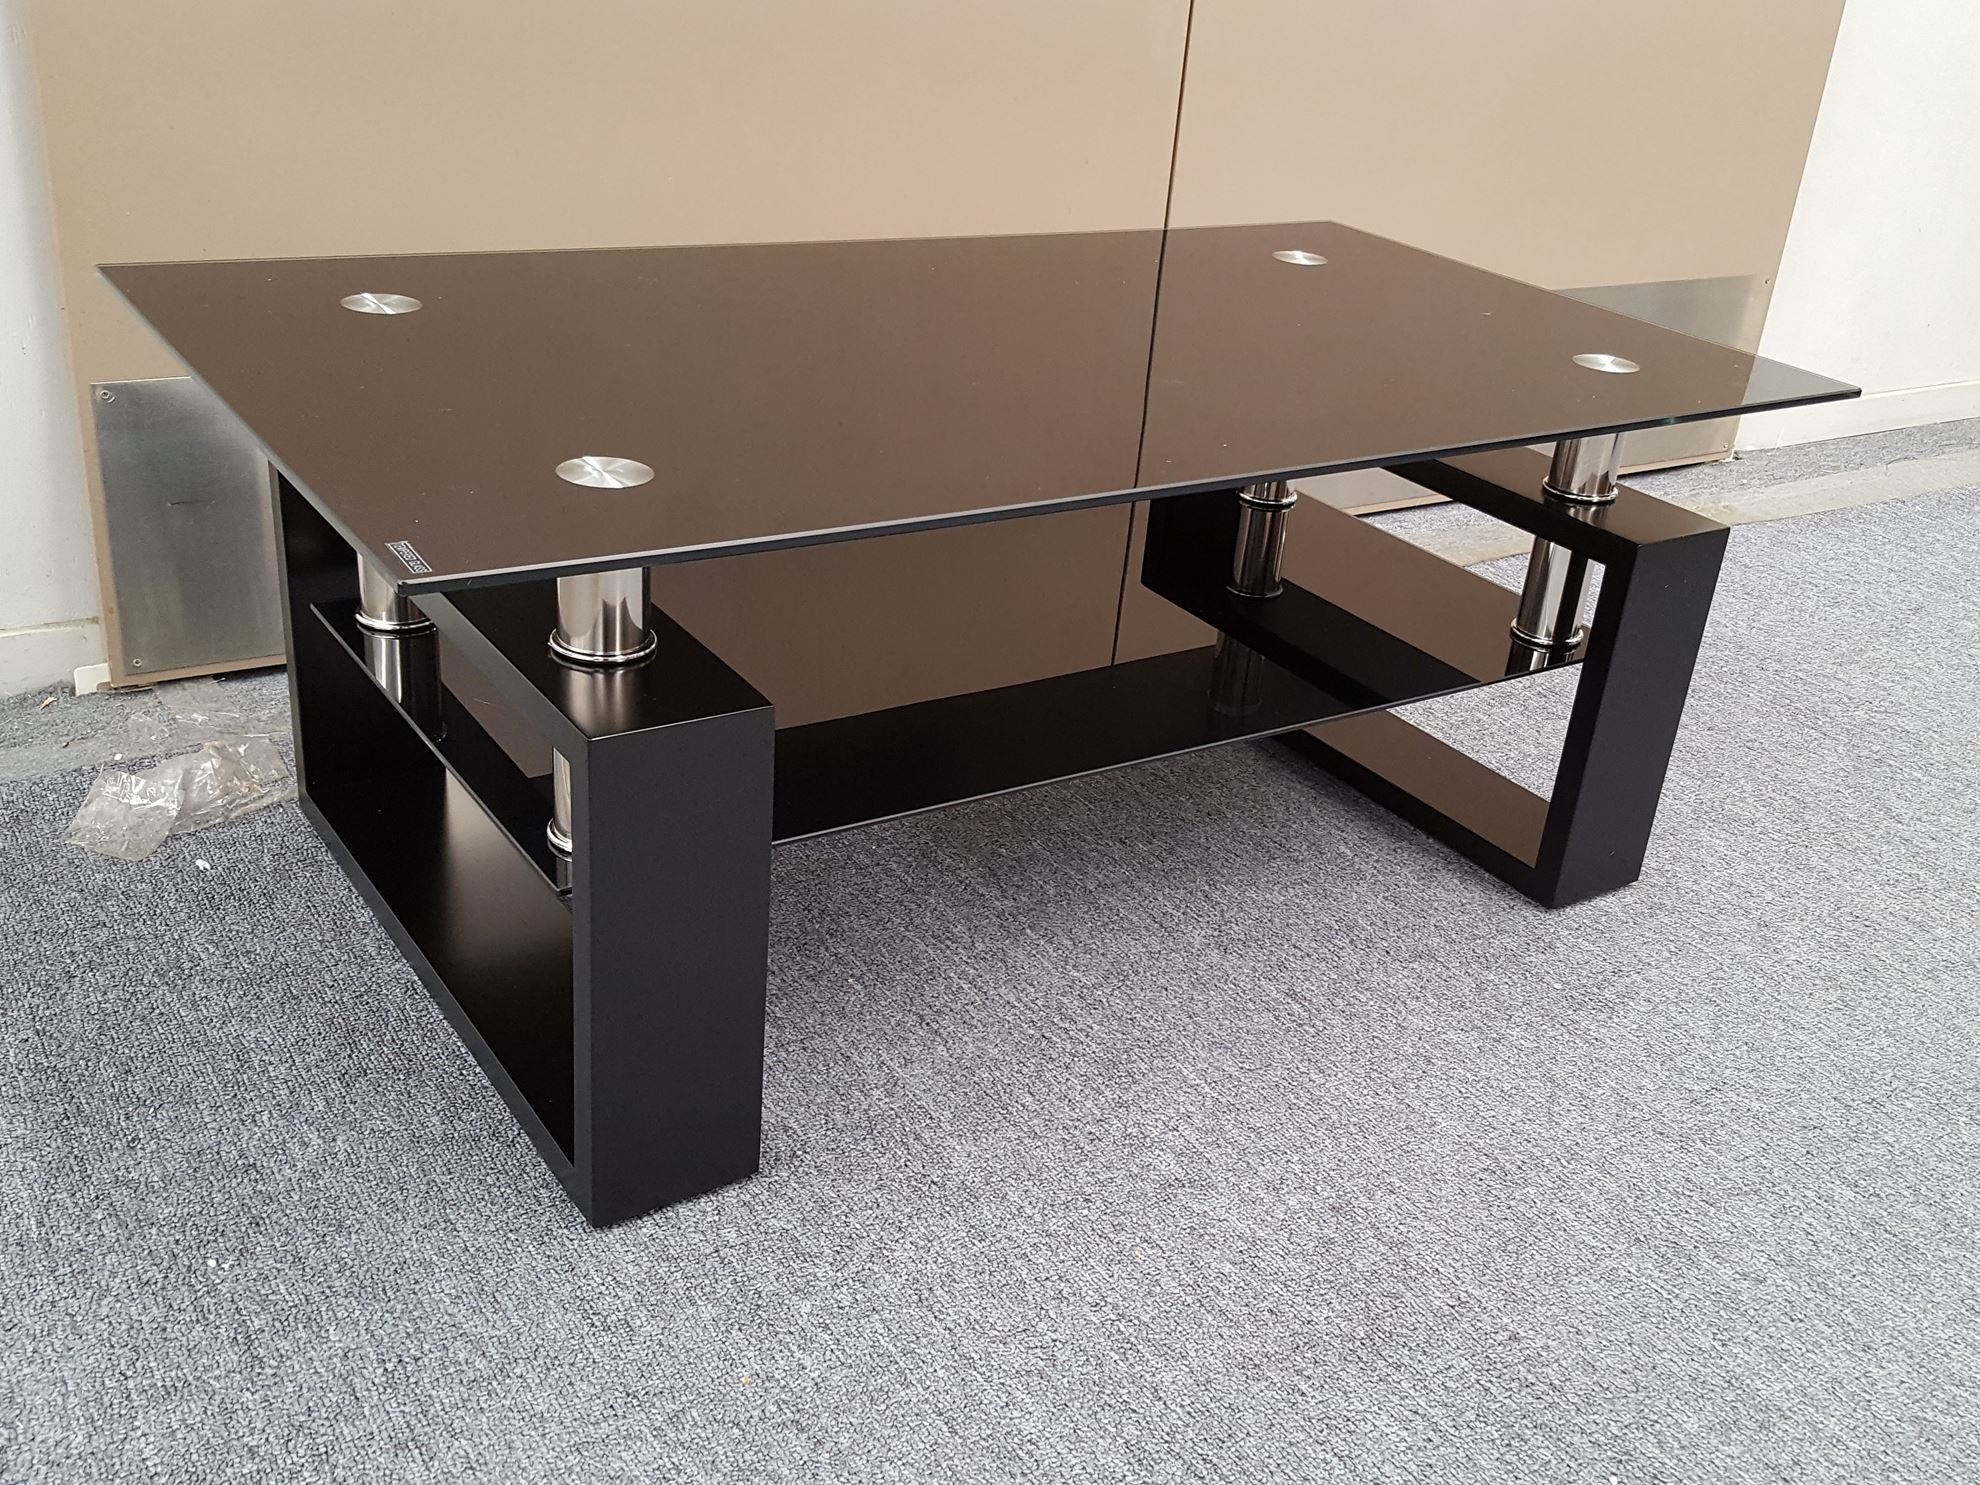 Furniture Place Kyla Glass Coffee Table With Black Tempered Glass